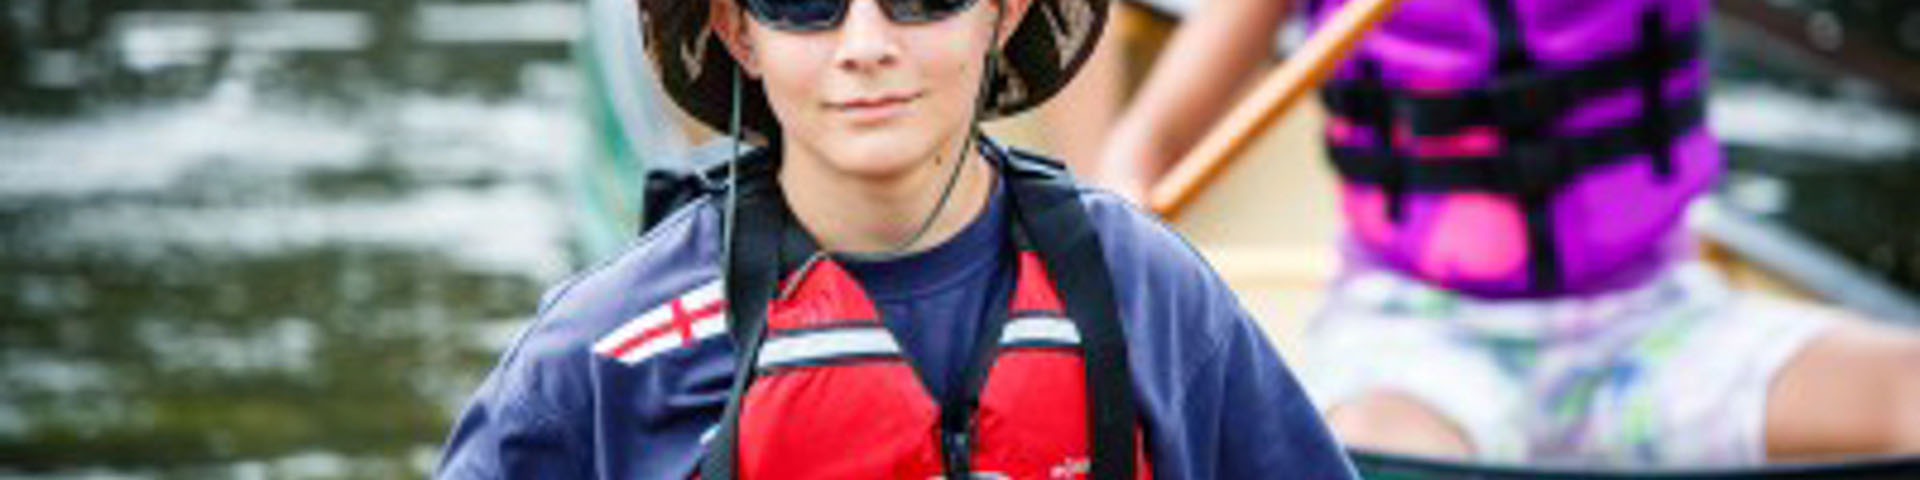 Kawartha Highlands Canoe Trip, Ages 11-13 by The Canadian Canoe Museum - Image 206